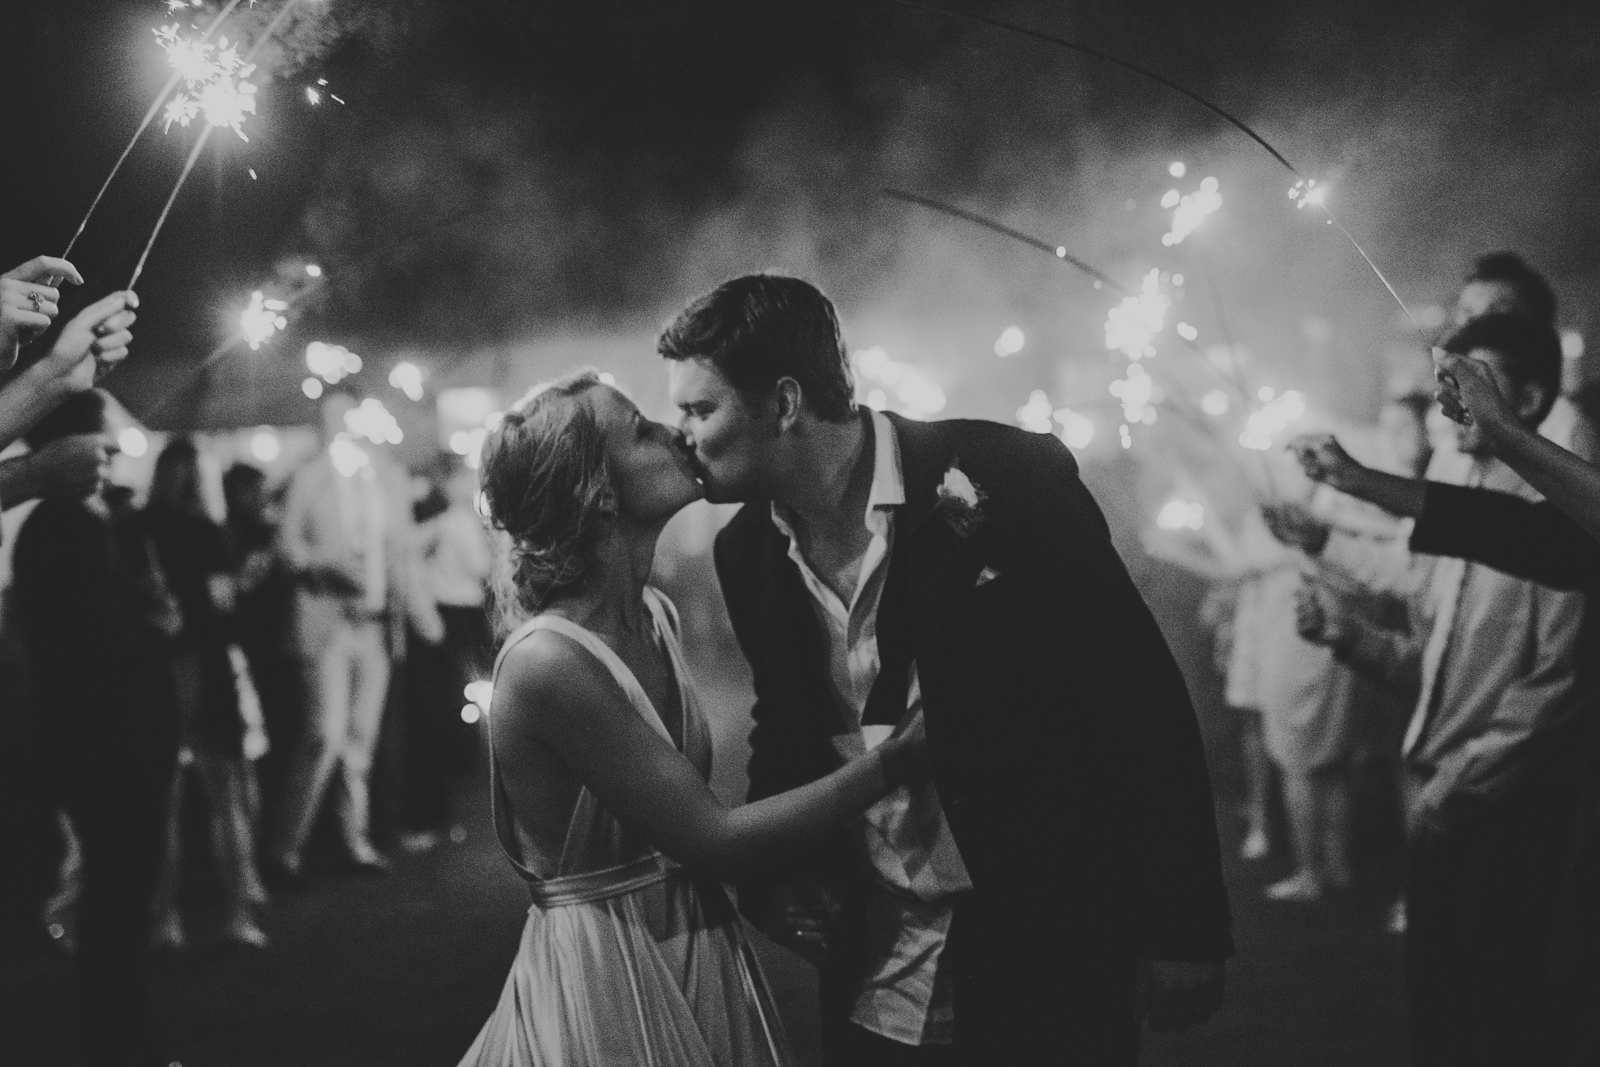 106-bride-and-groom-kiss-at-sparkler-exit